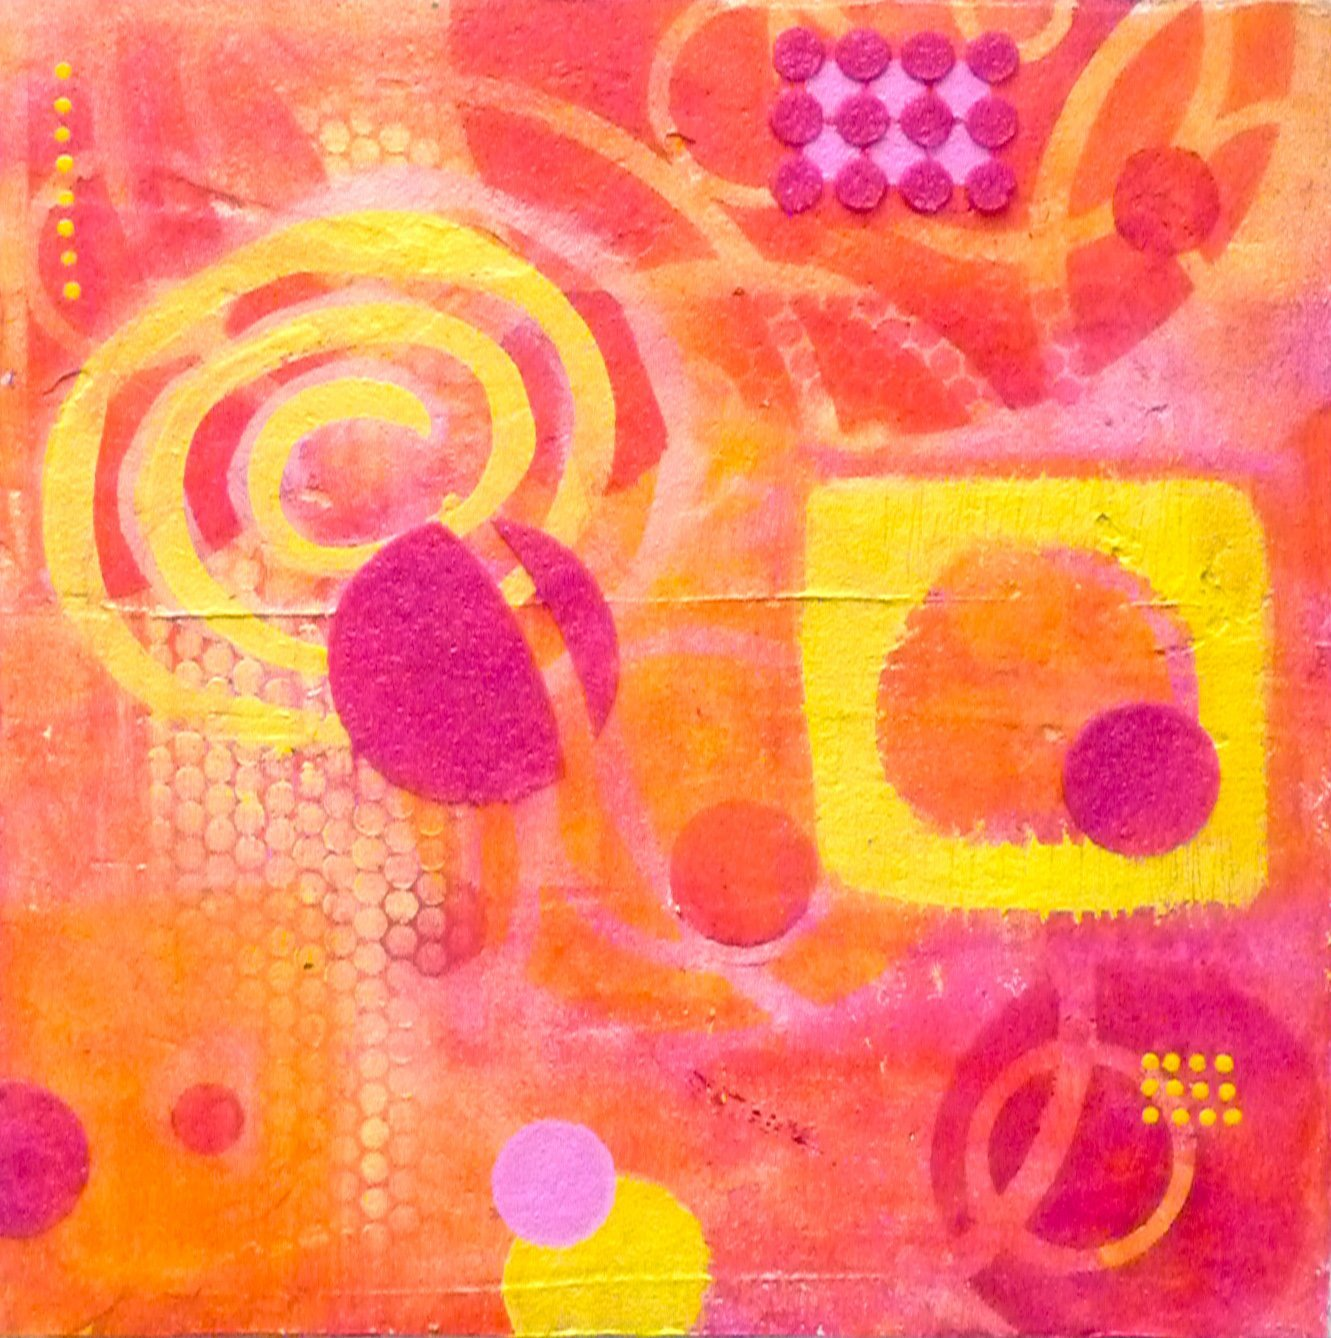 Original Abstract Acrylic Painting on Canvas. DRIVE IN MOVIE One-Of-A-Kind abstract, contemporary painting in orange, red, pink and yellow. Handmade with love in San Francisco by Tesia Blackburn.